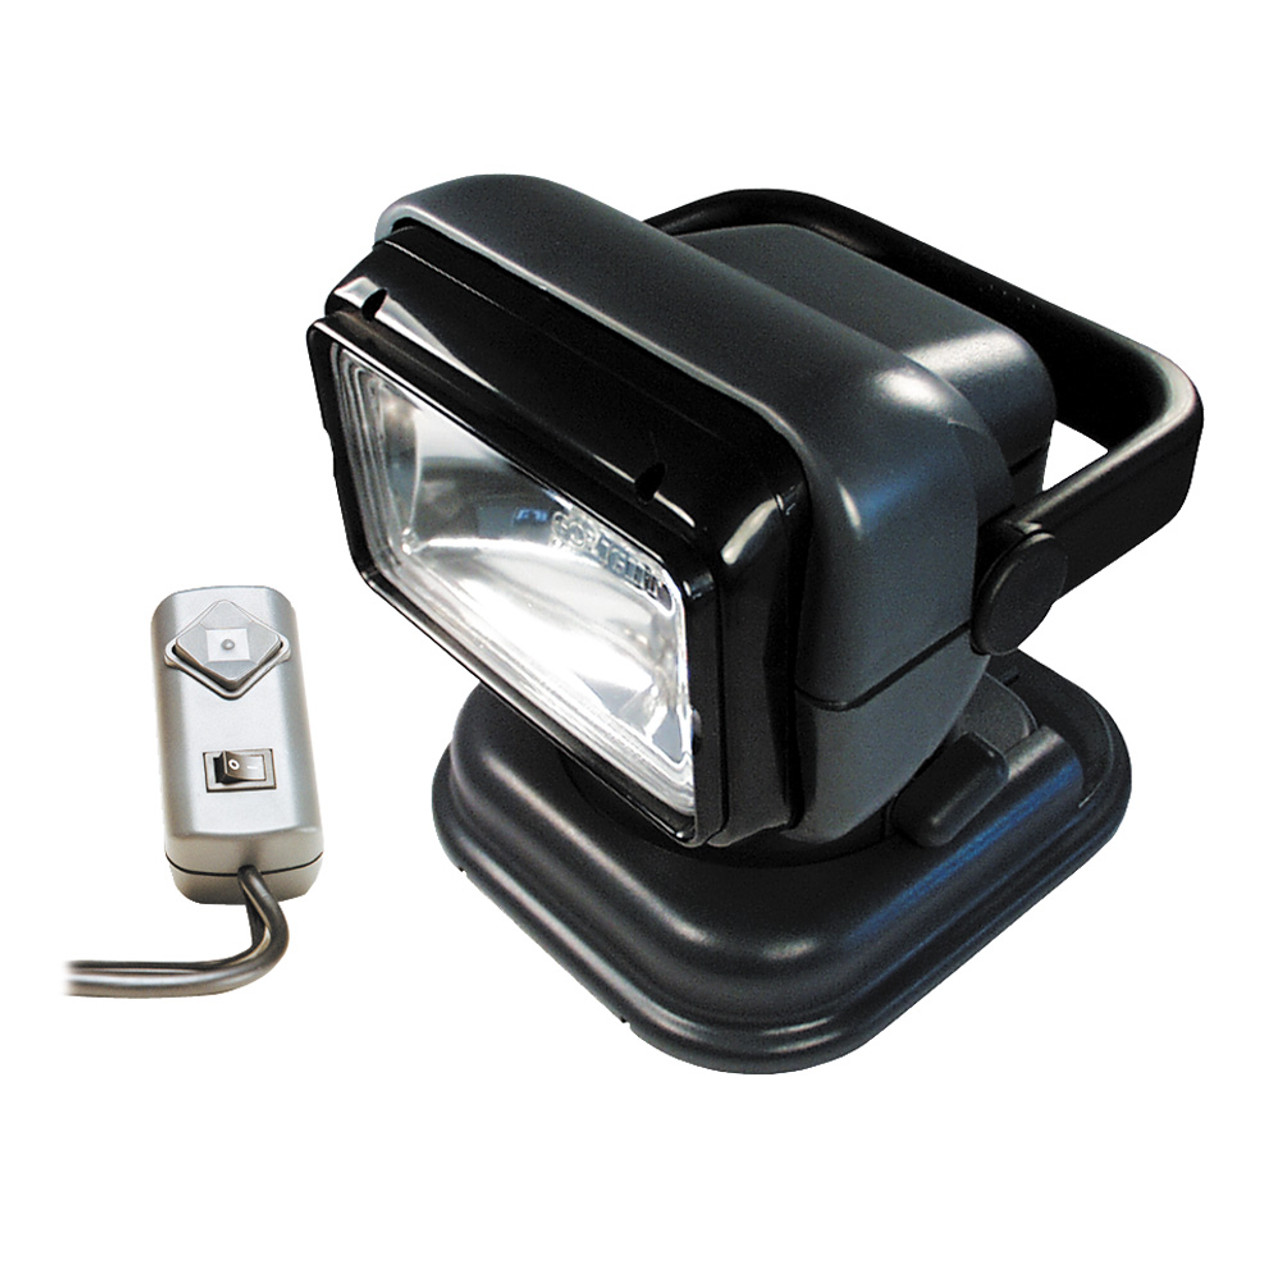 Golight Portable Searchlight w\/Wired Remote - Grey [5149]